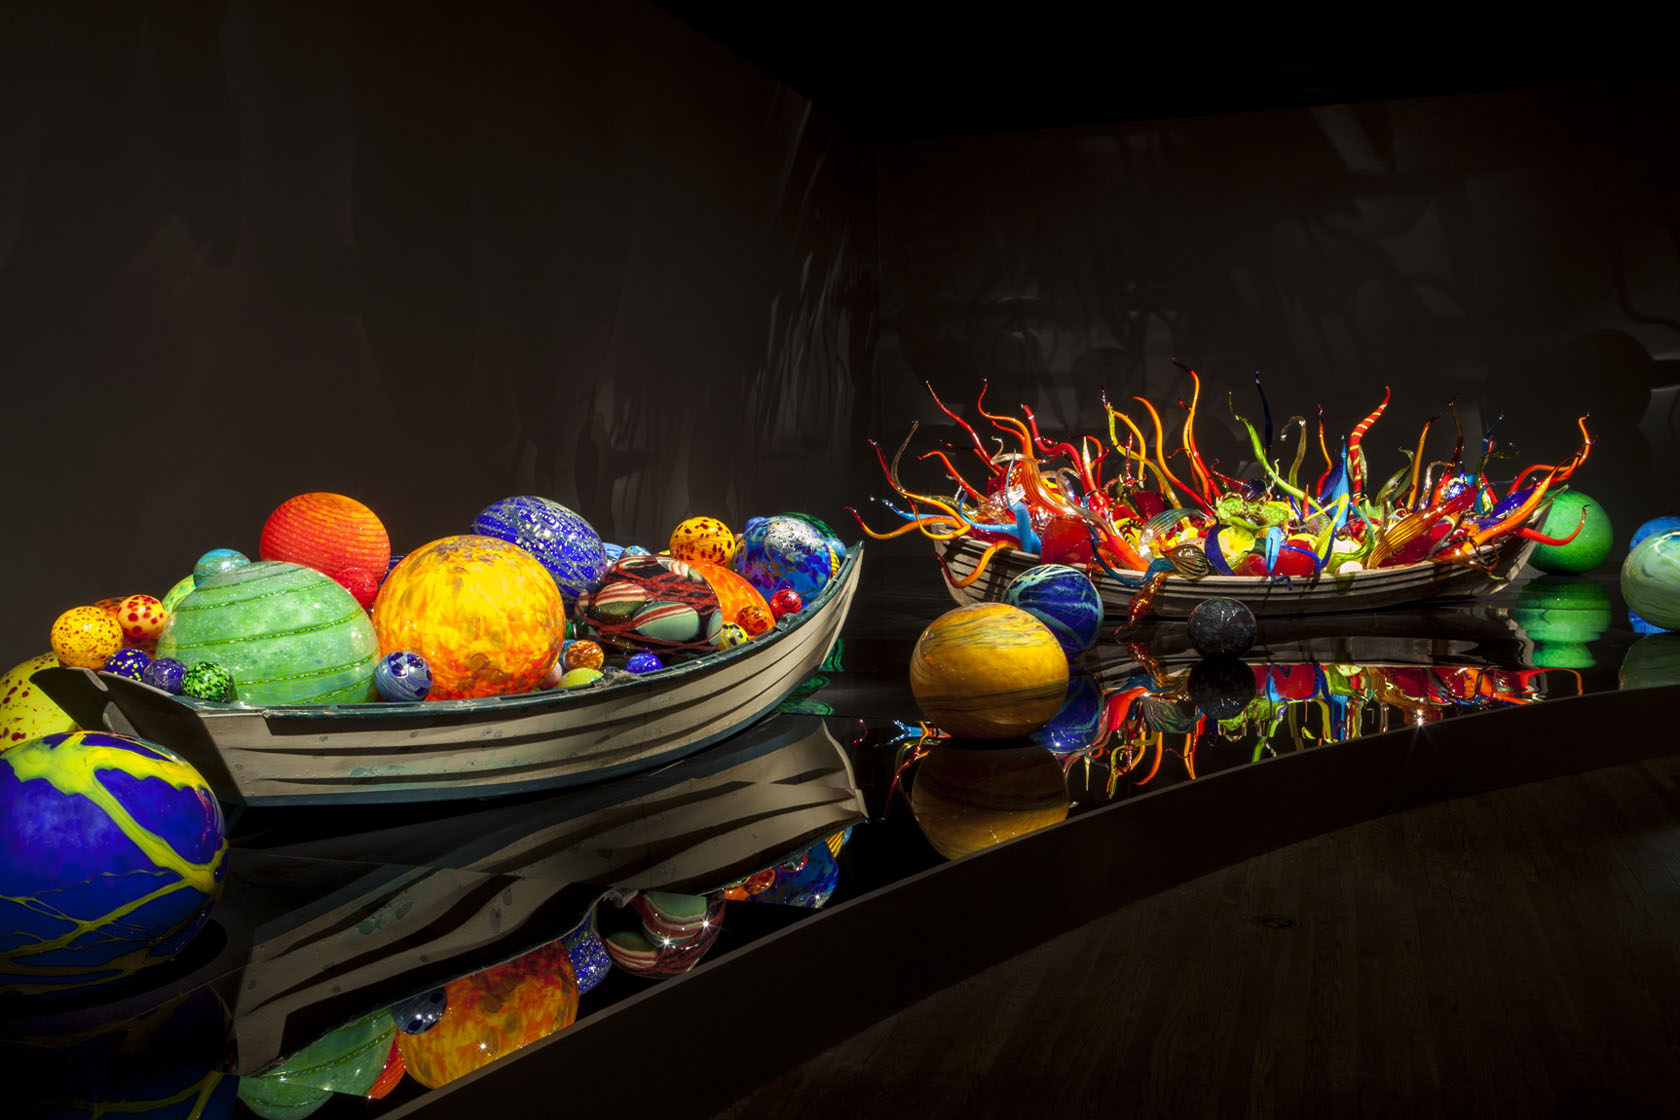 Dale-Chihuly-Float-Boat-and-Fiori-Boat_slide